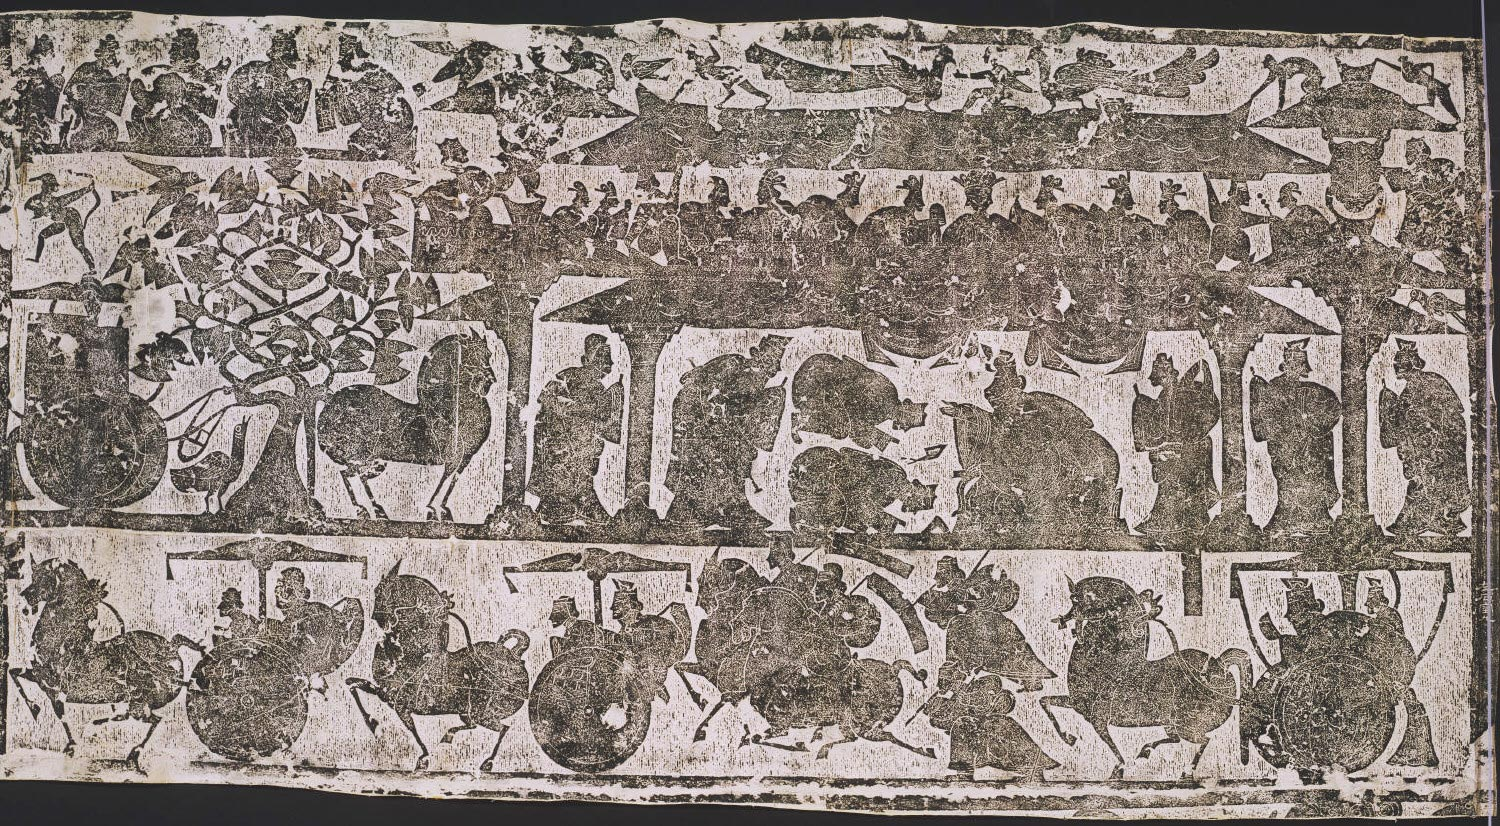 Rubbing from carved stone from the Wu Family Shrines, Eastern Han Dynasty (25-220), Stone Chamber 2 (south wall)